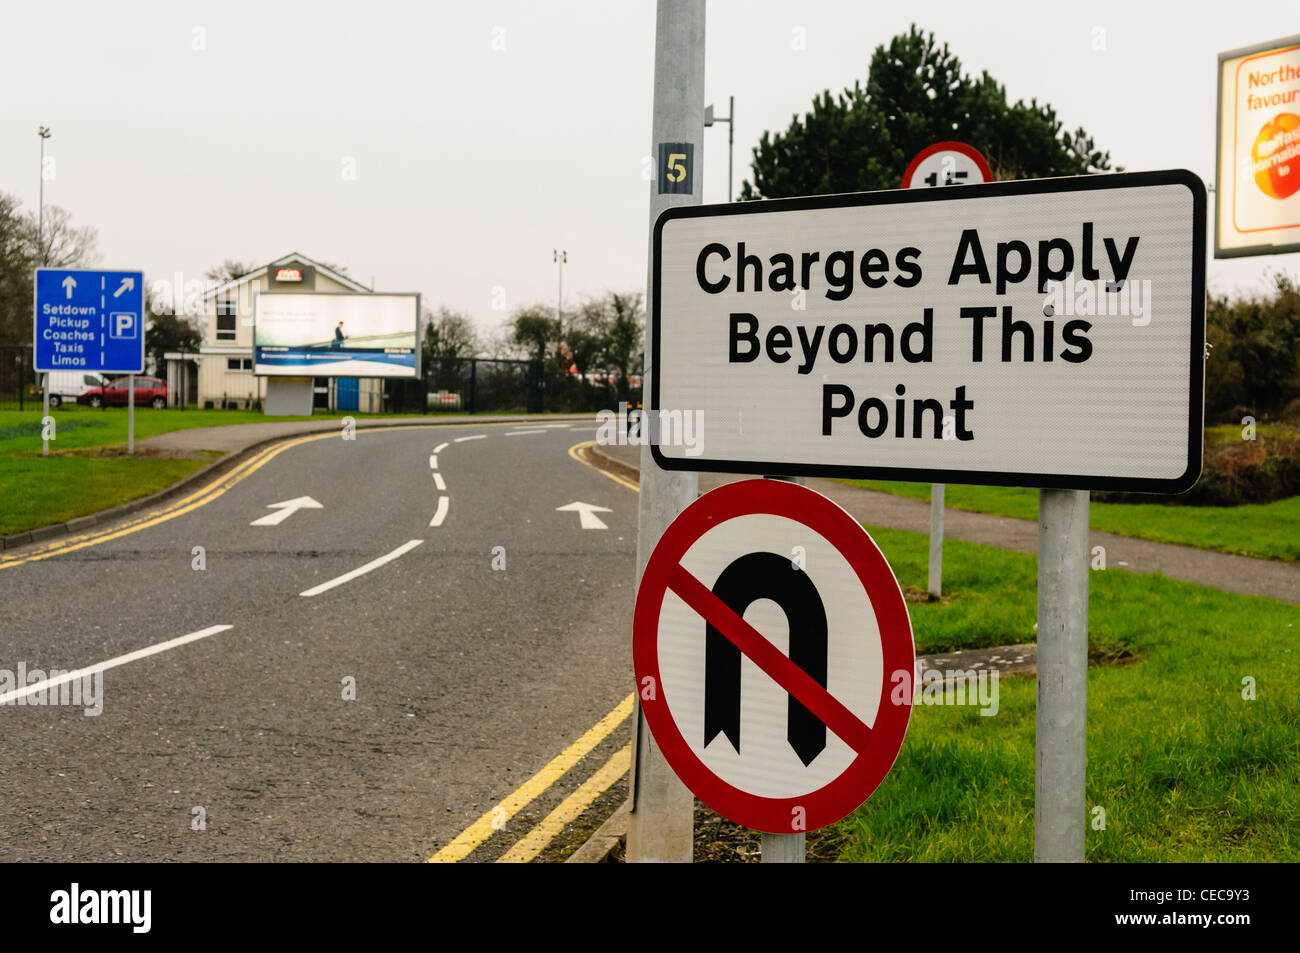 Sign at approach to airport terminal, warning that charges apply beyond this point - Stock Image